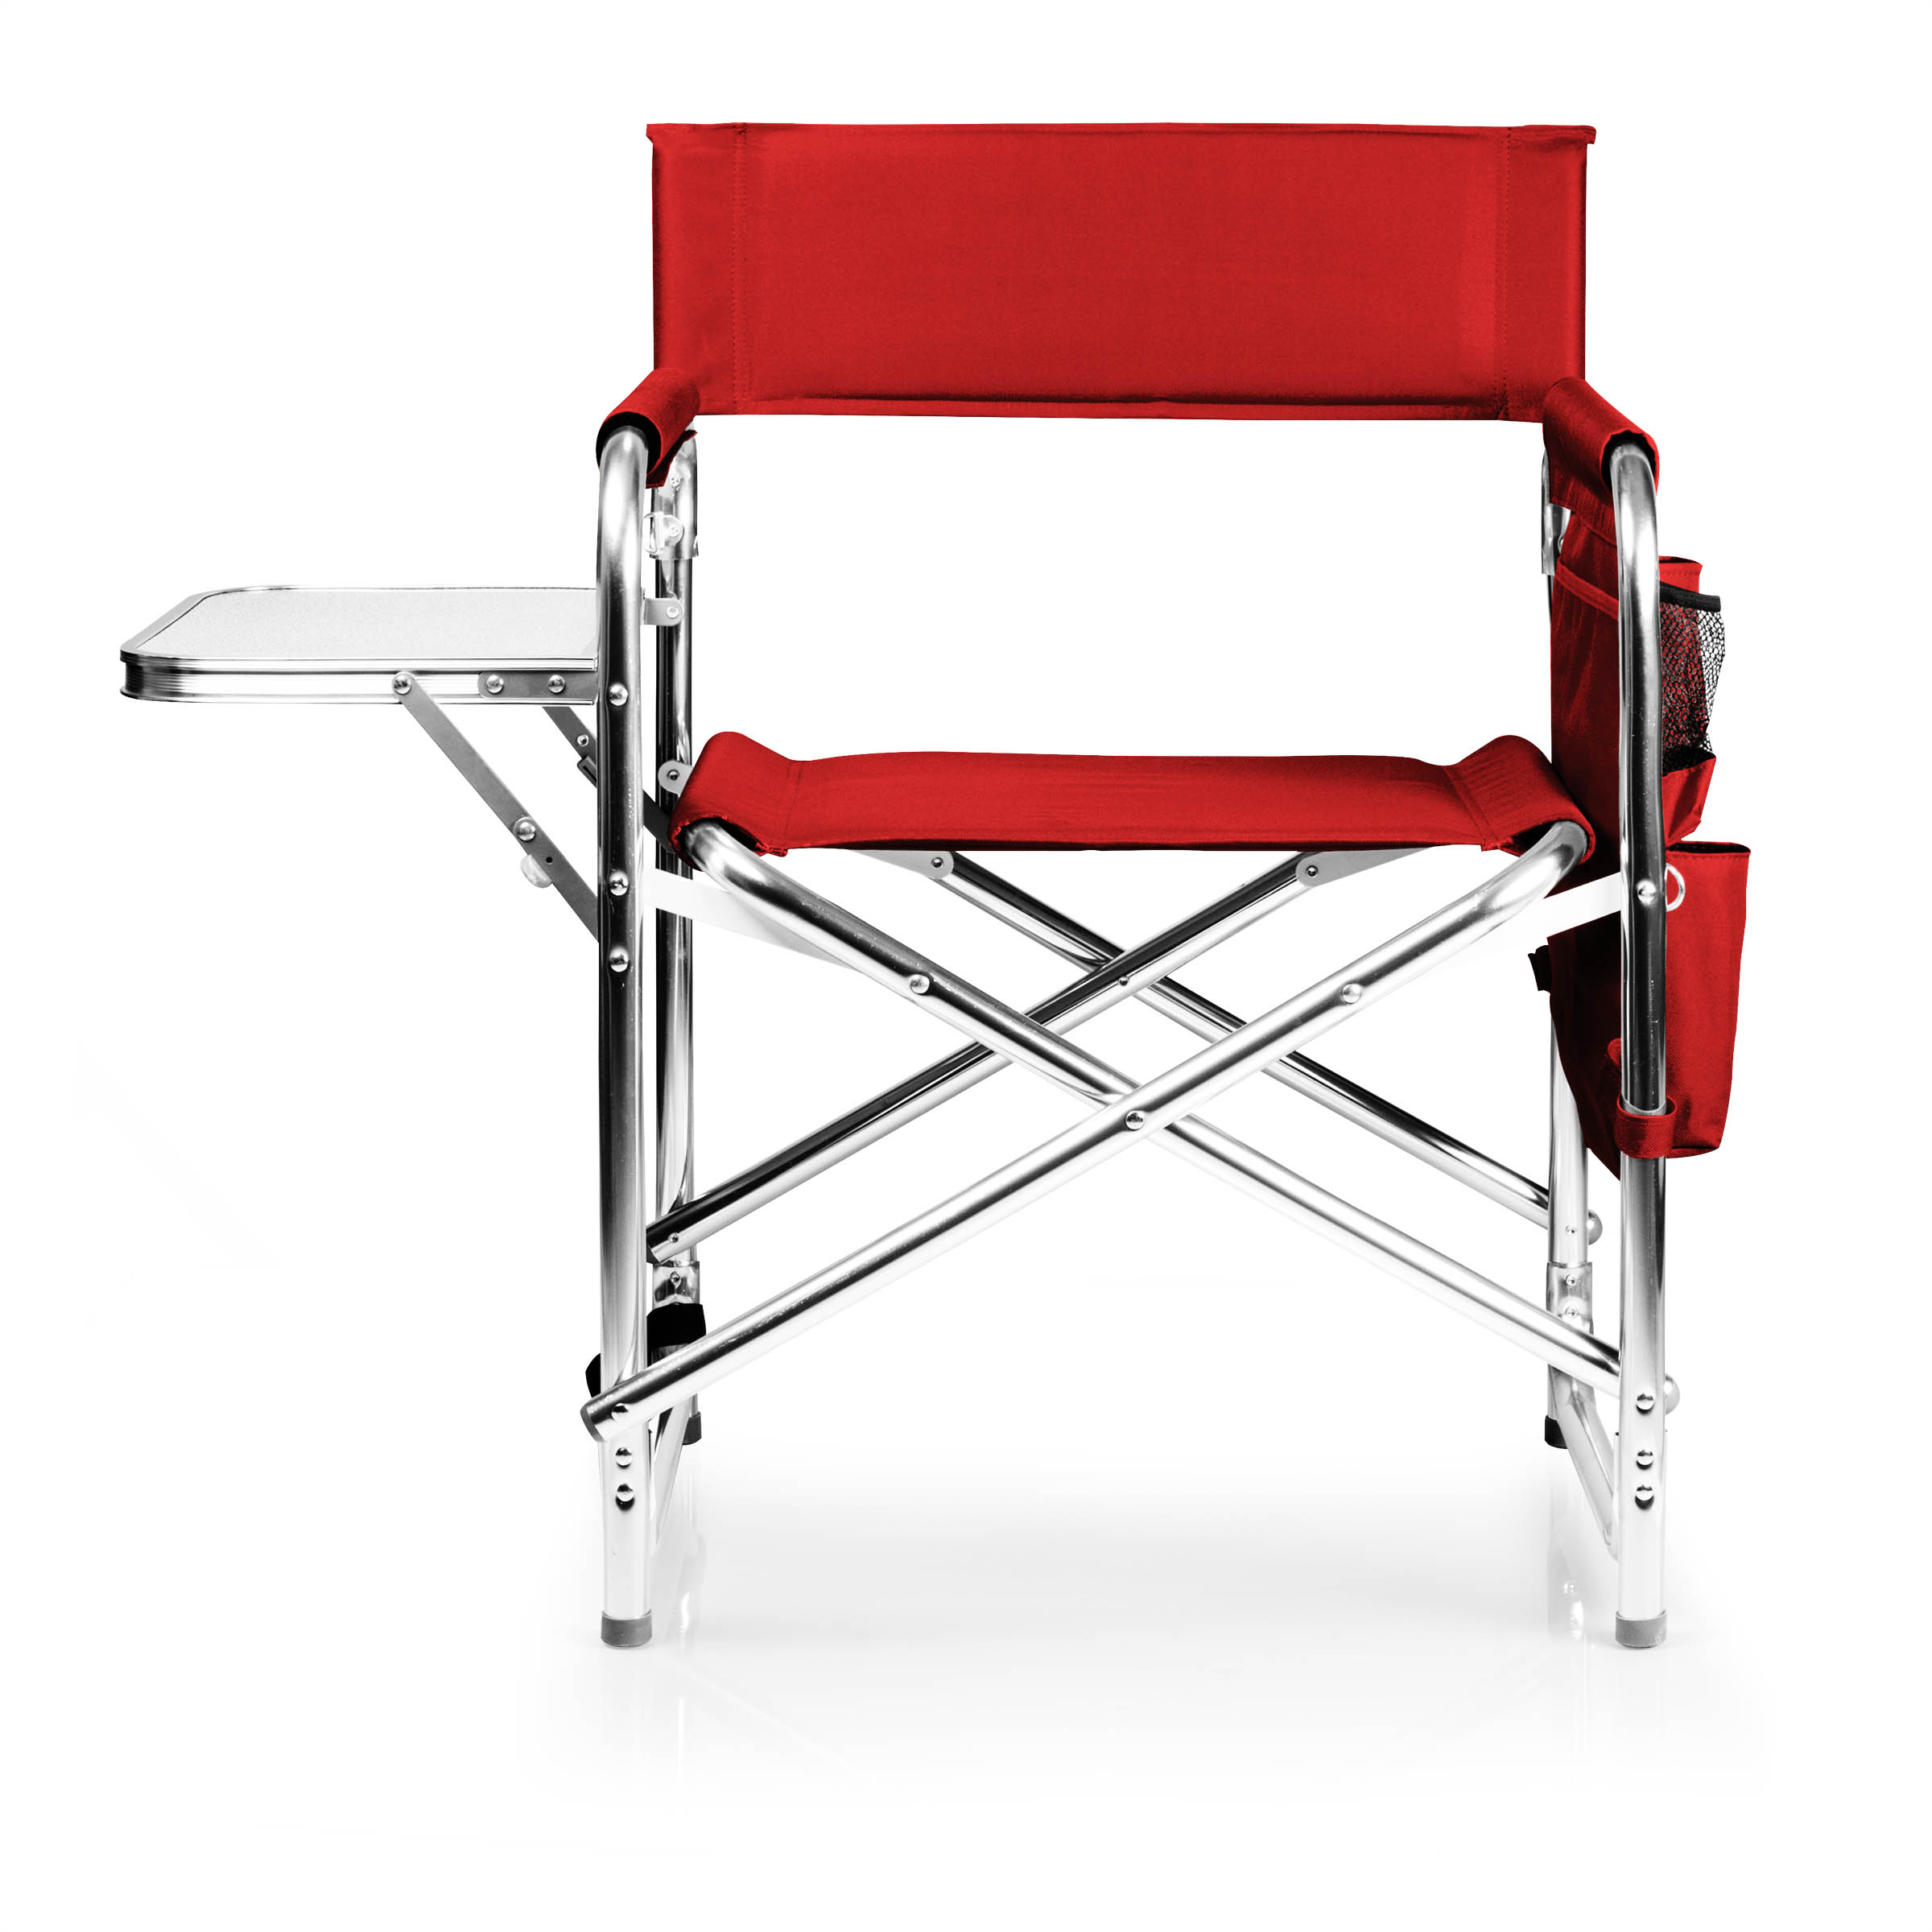 Picnic Time Stadium Chair Sports Chair Picnic Time Family Of Brands